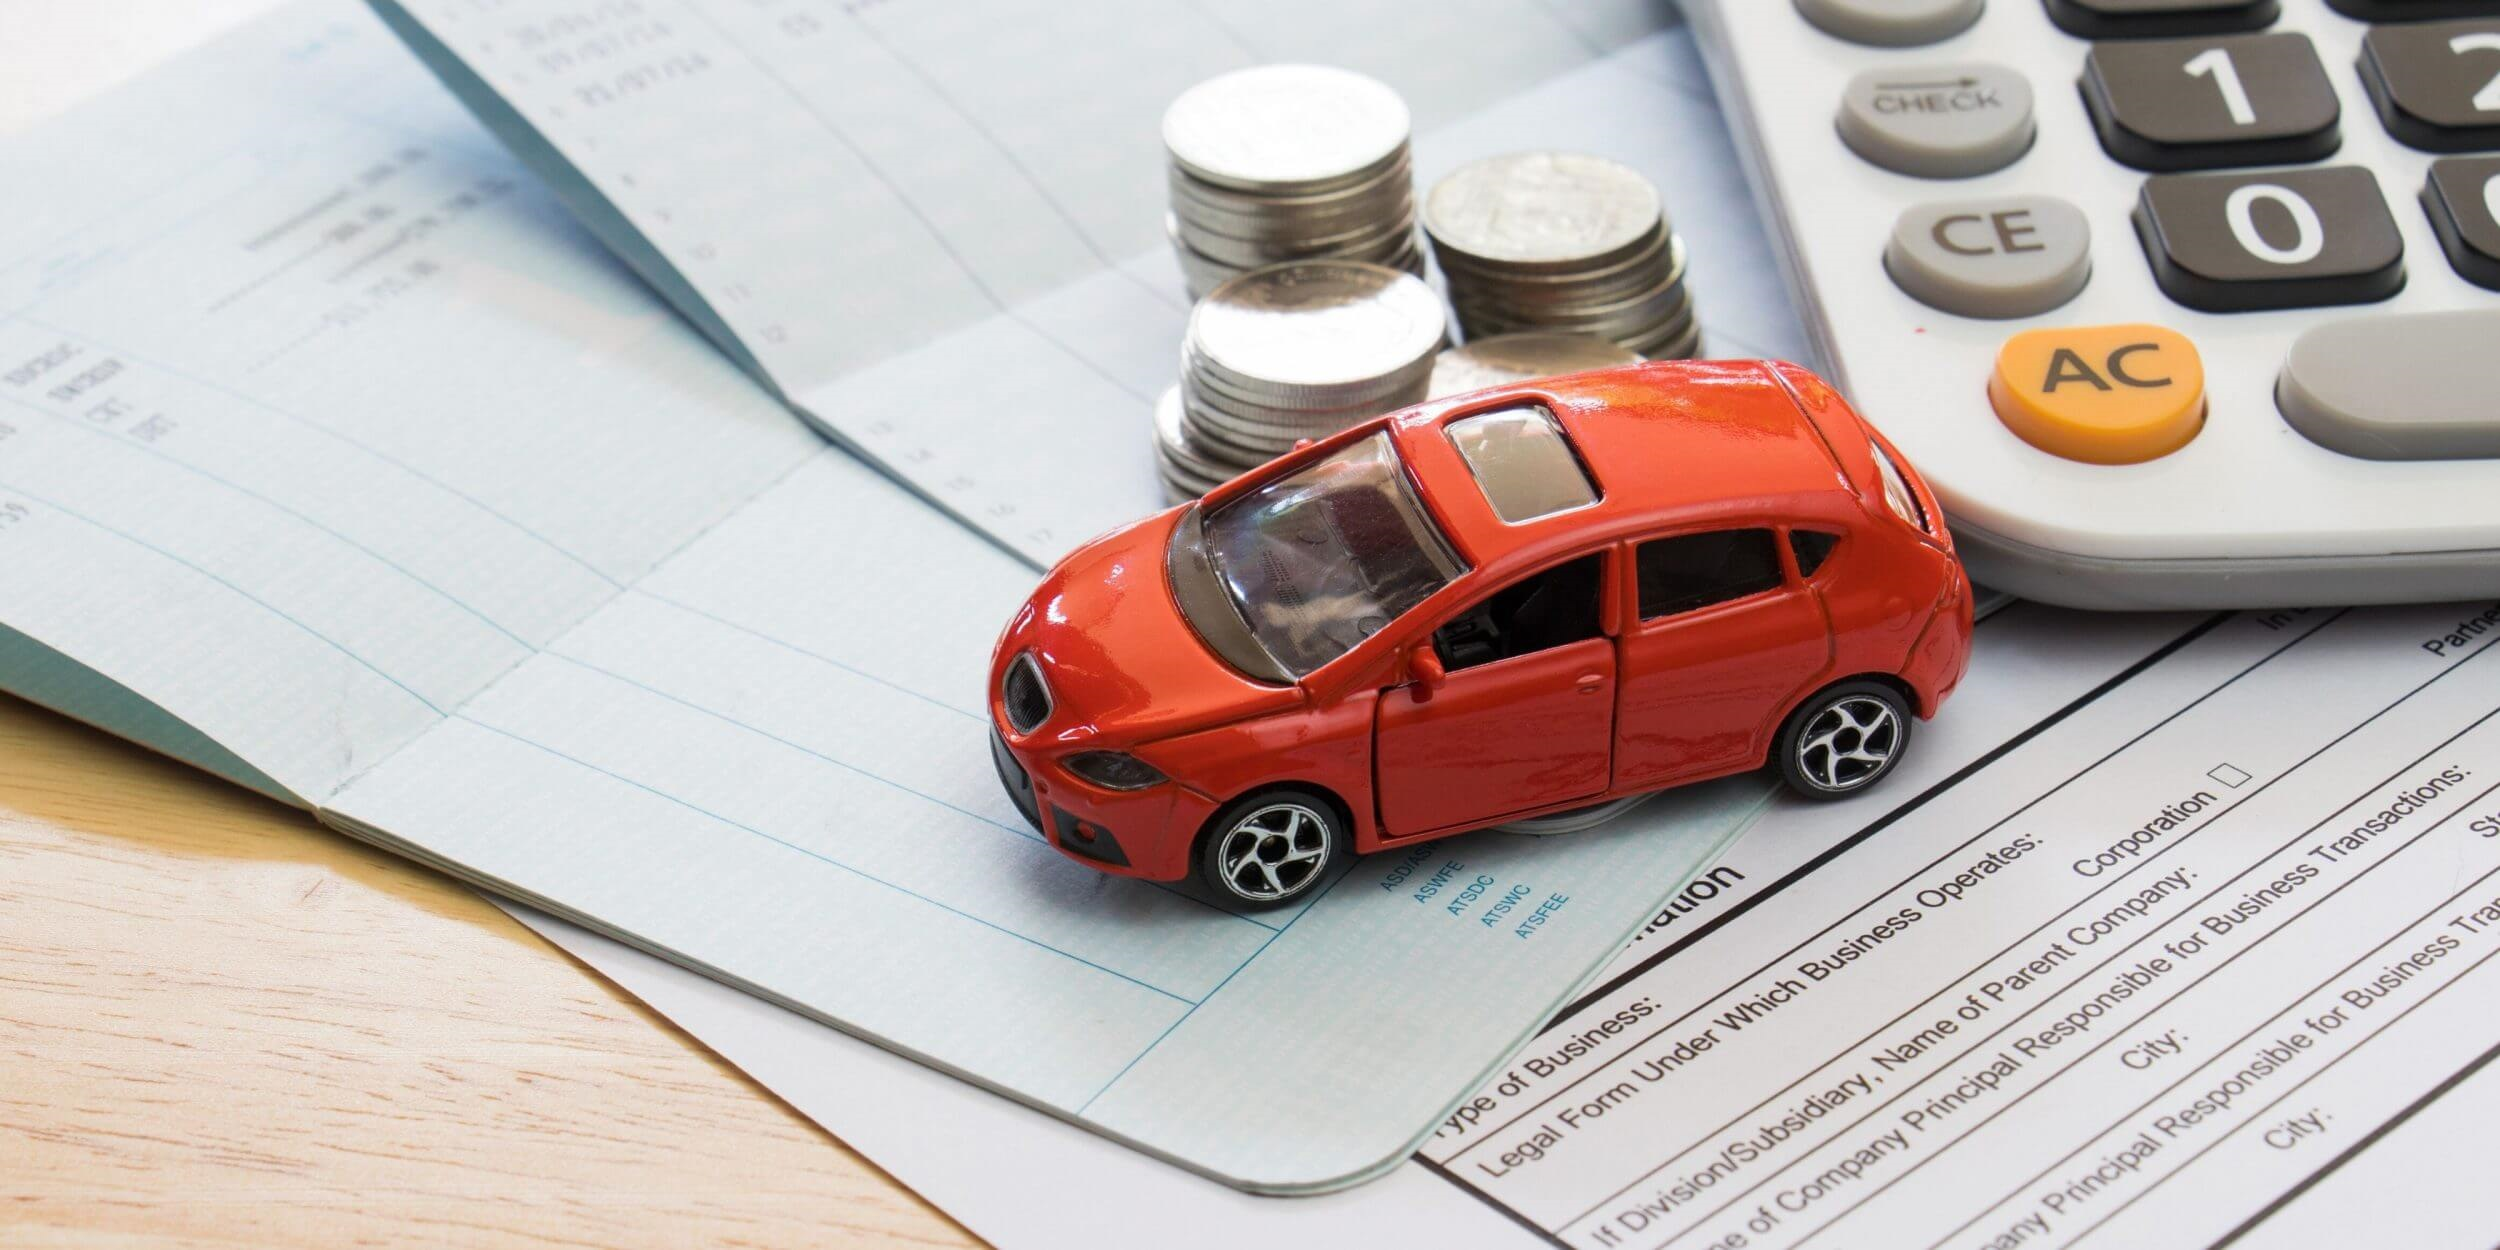 Does being 25 make insurance cheaper?